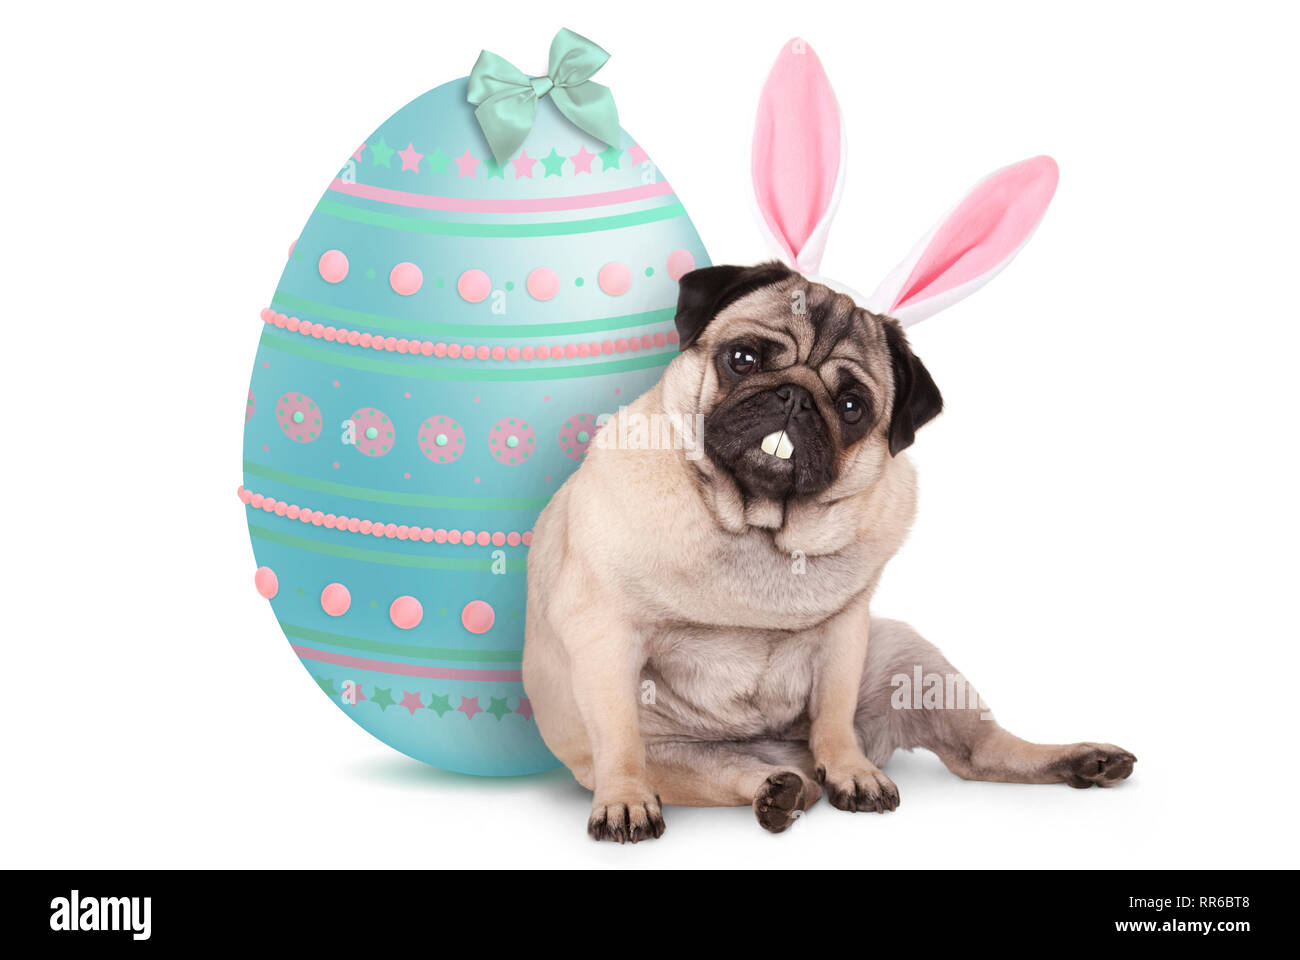 adorable cute pug puppy dog sitting down next to pastel colored easter egg, wearing bunny ears and teeth, isolated on white background Stock Photo